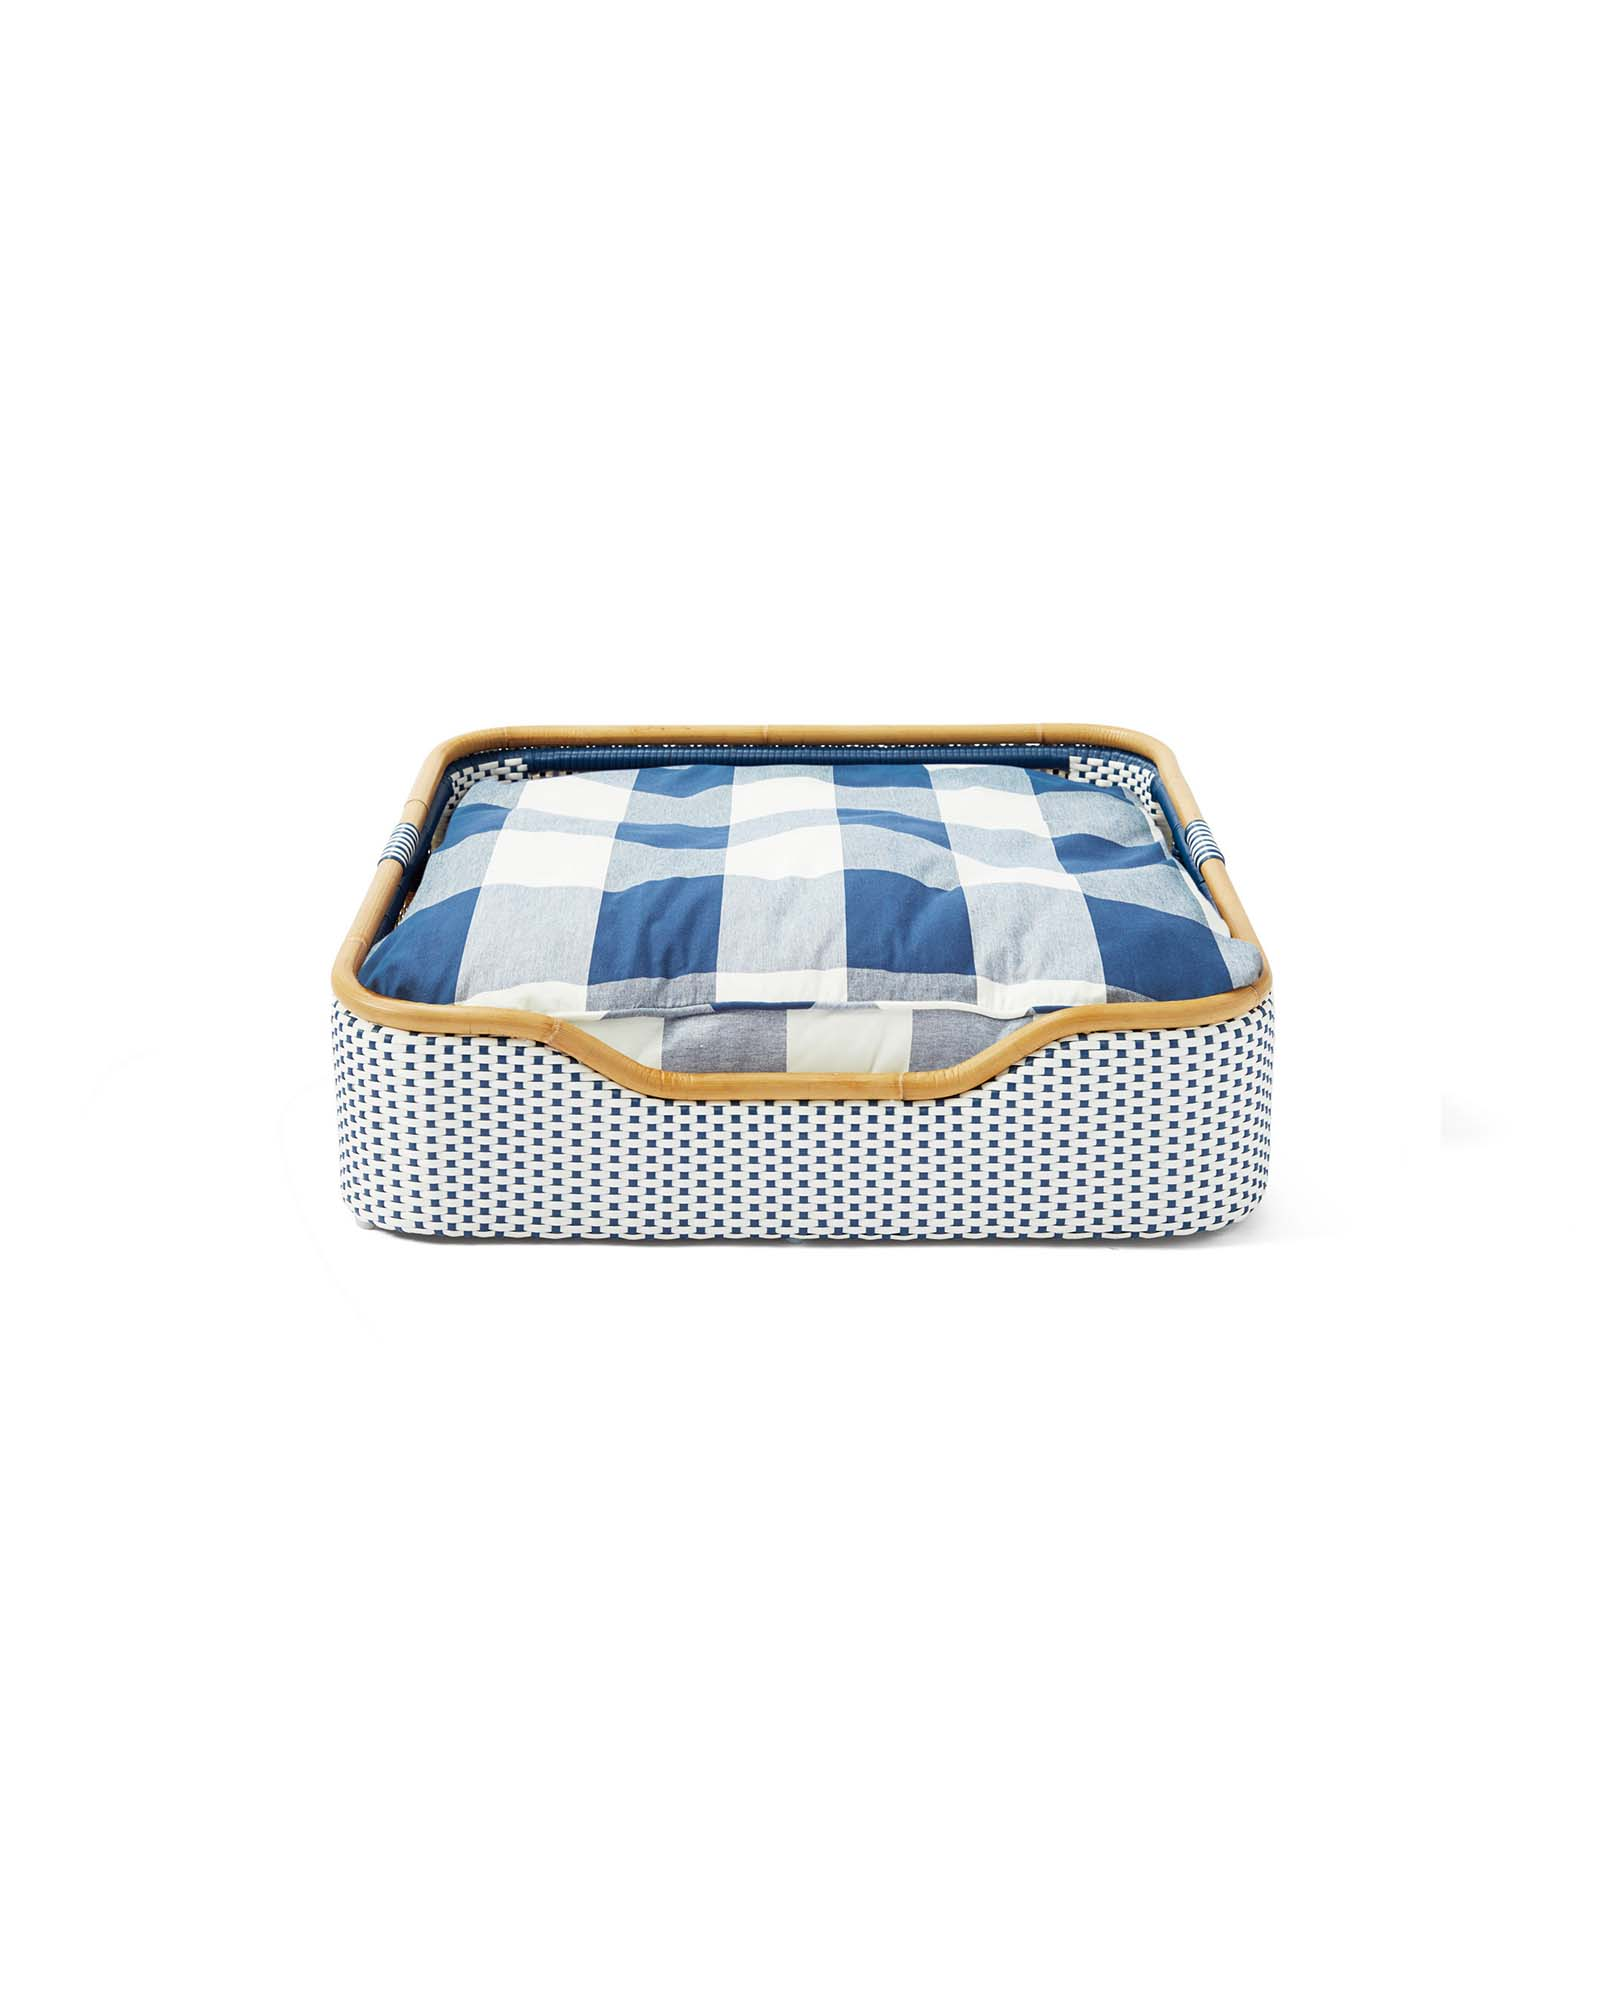 Riviera Dog Bed